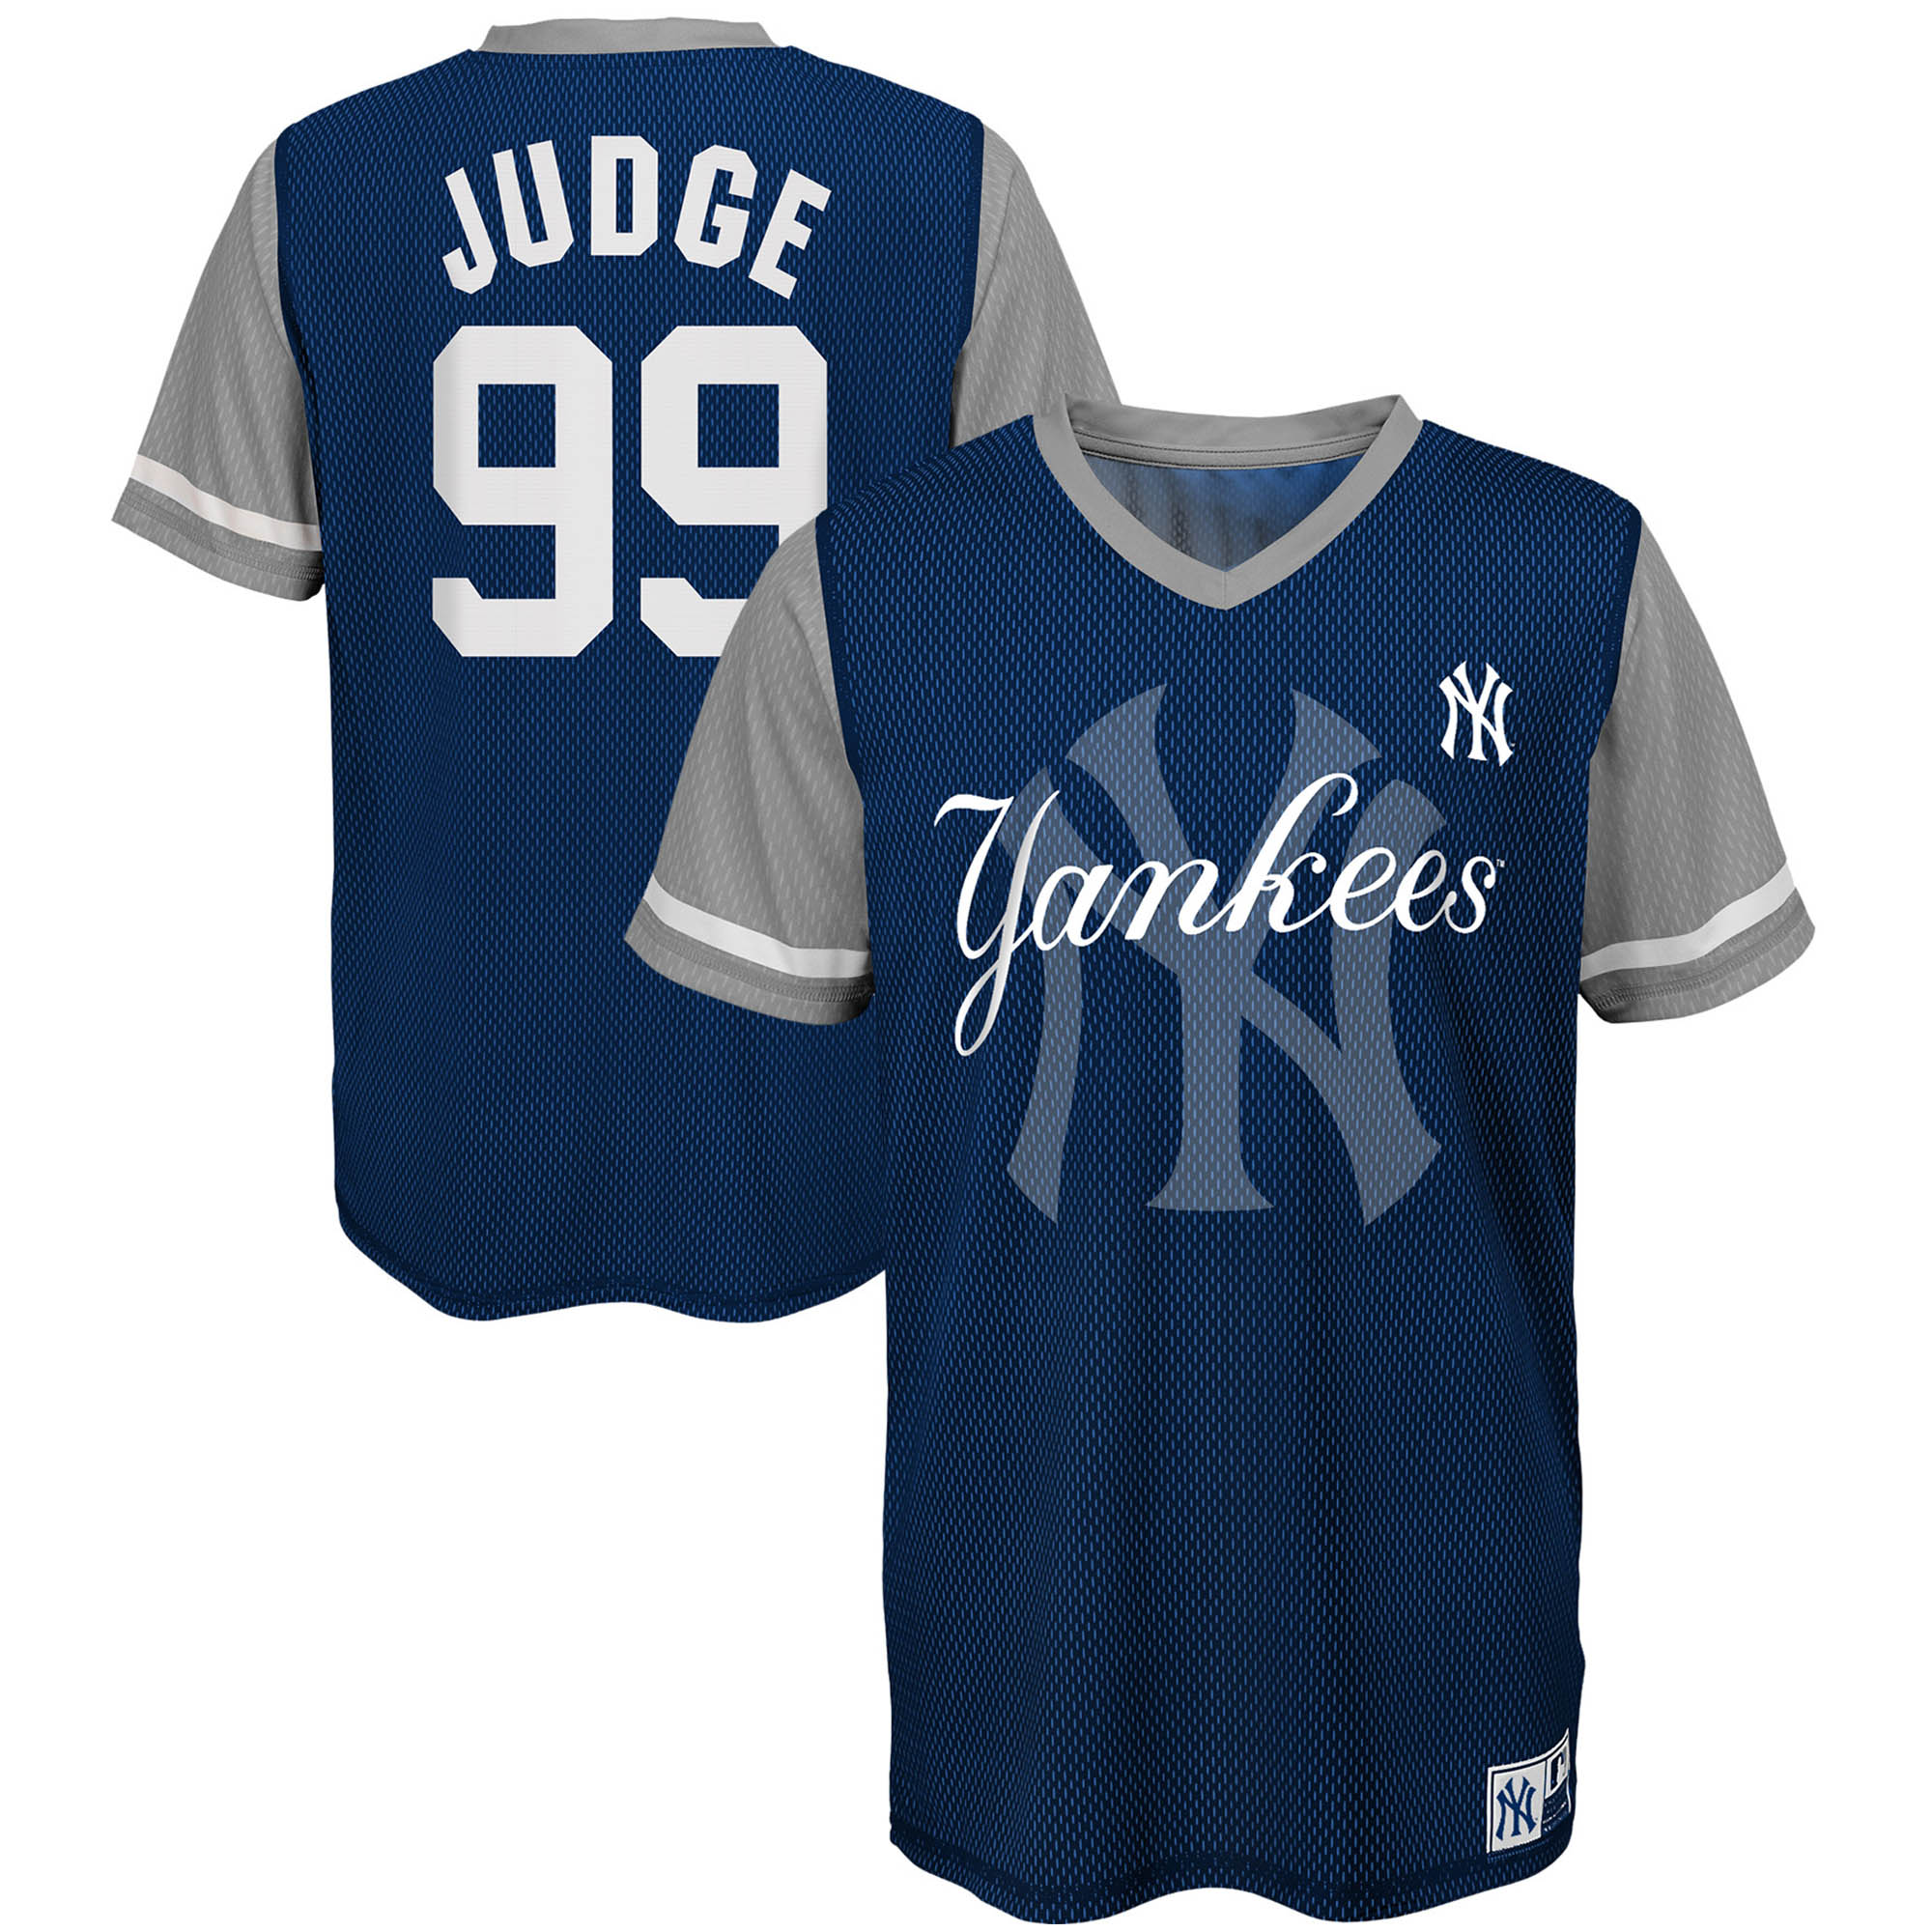 Aaron Judge New York Yankees Majestic Youth Play Hard Player V-Neck Jersey T-Shirt - Navy/Gray